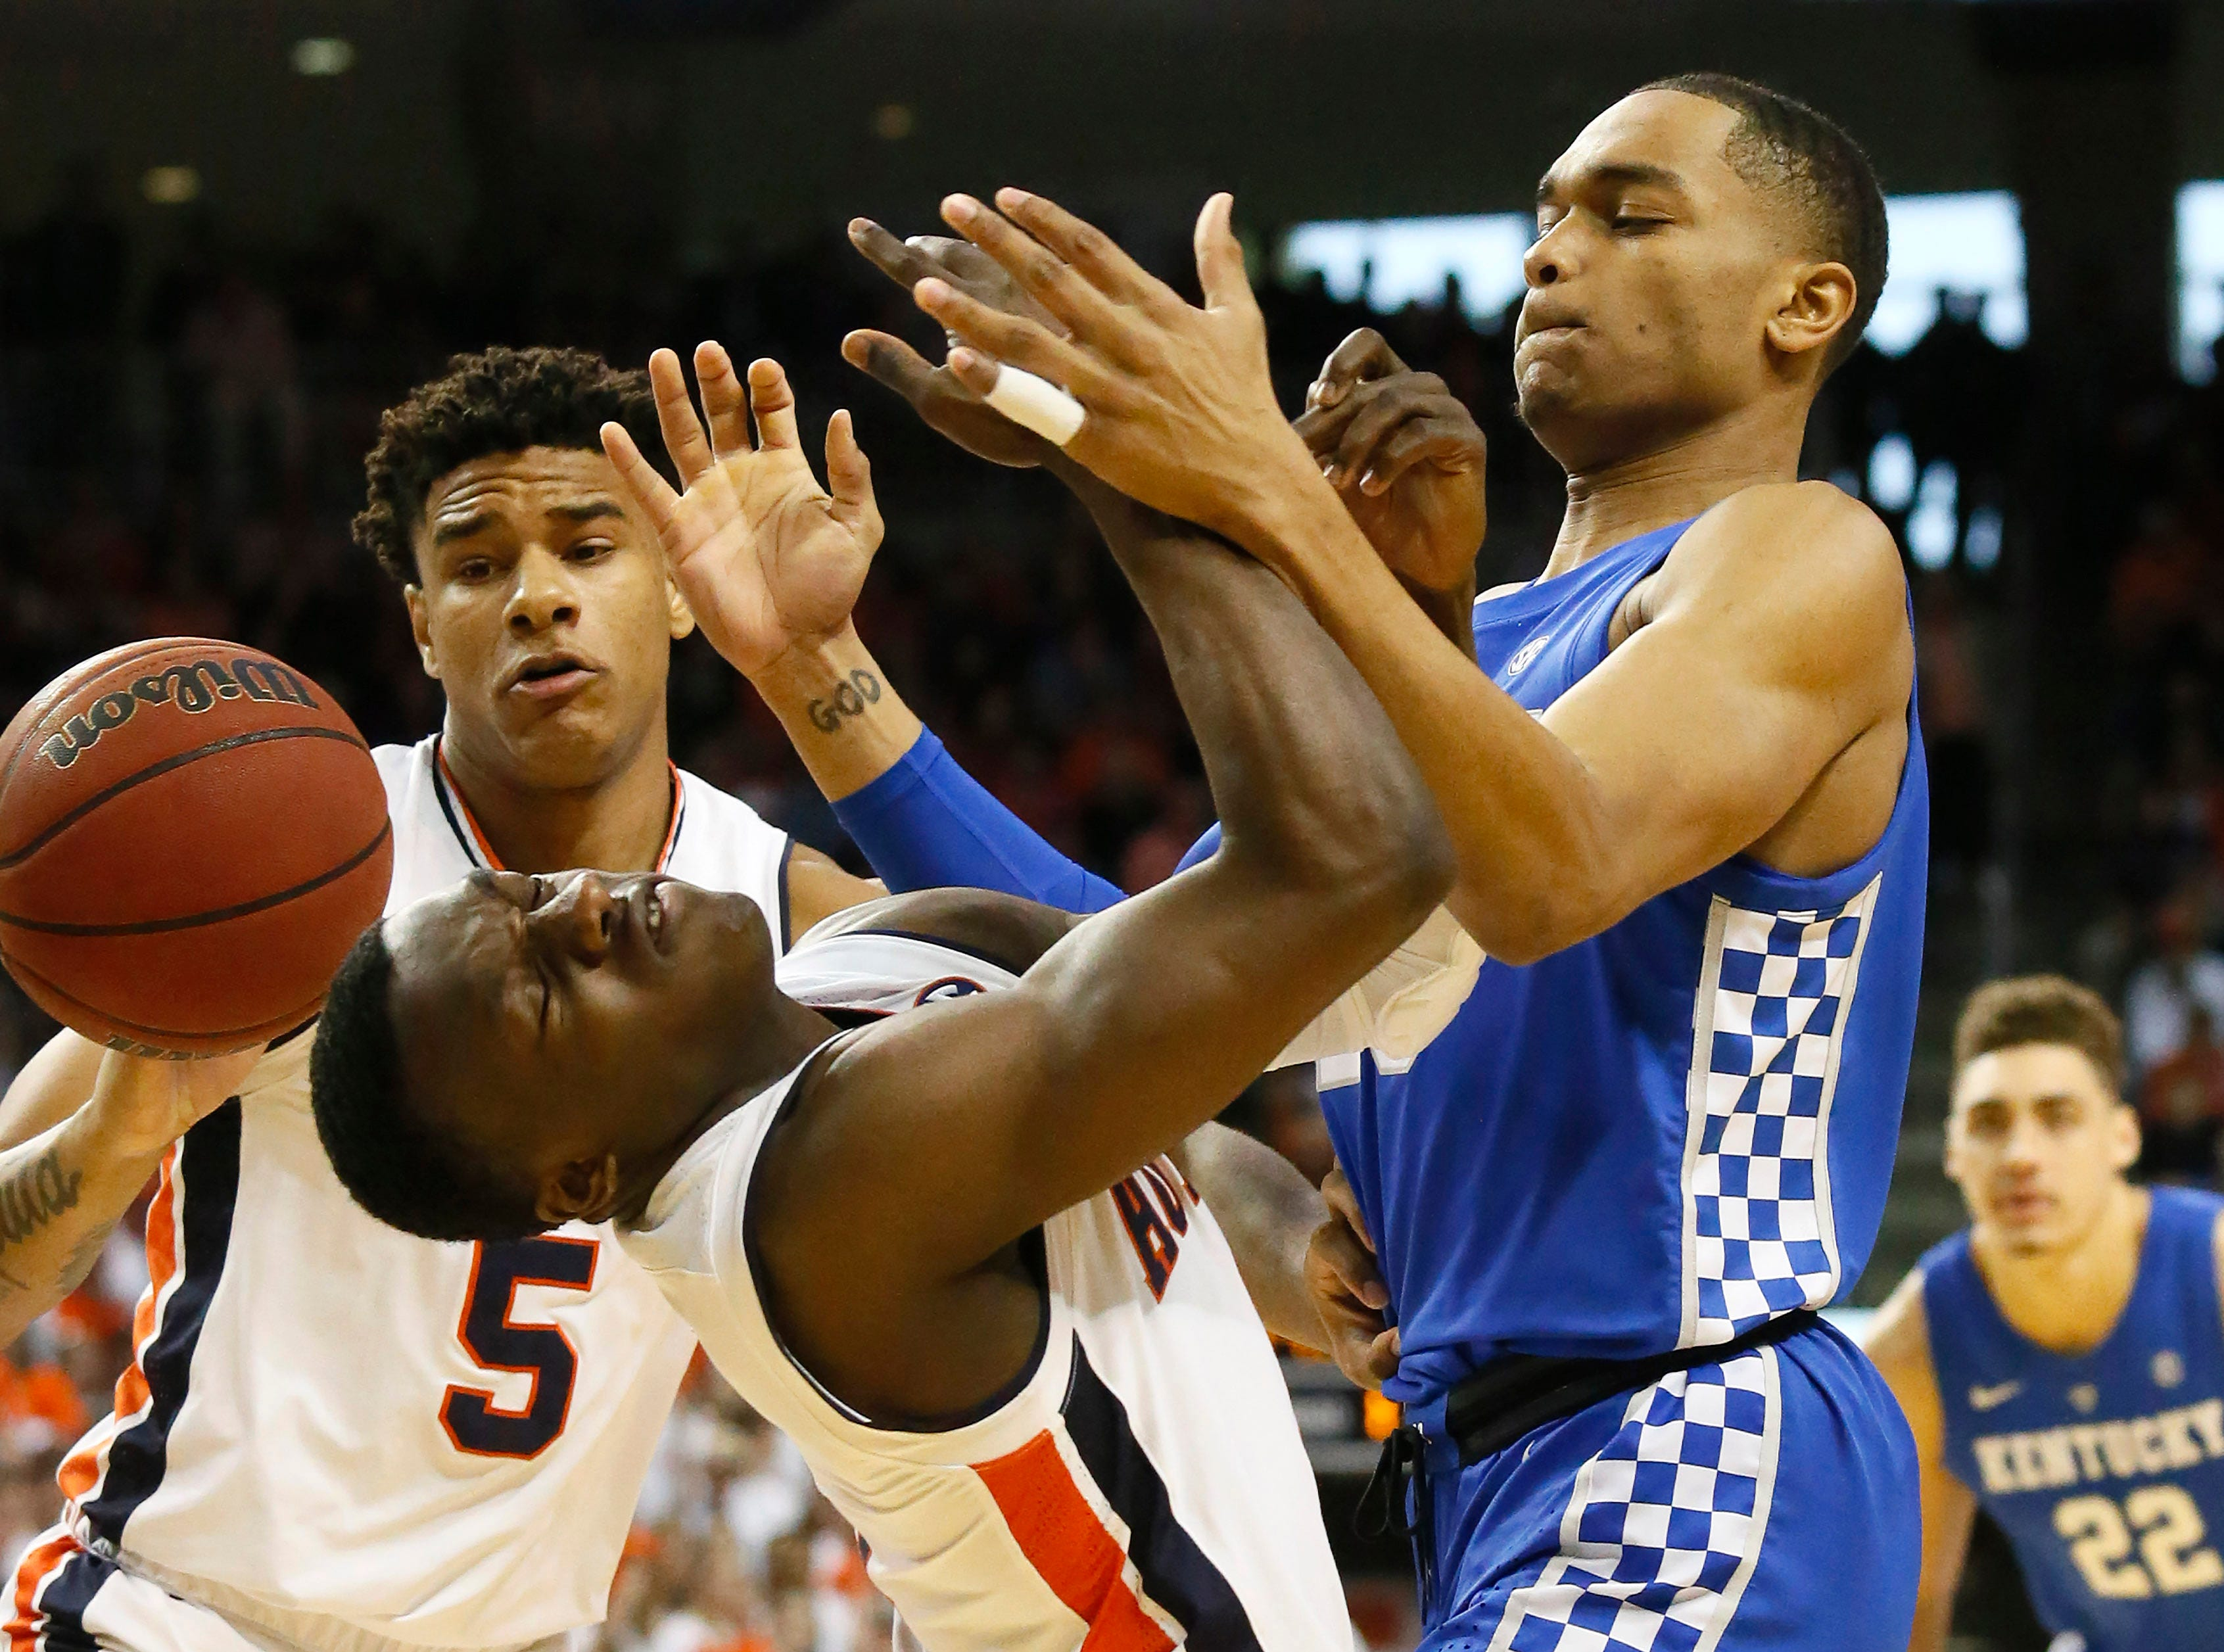 Jan 19, 2019; Auburn, AL, USA; Auburn Tigers guard Jared Harper (10) has a rebound bounce off his head as Kentucky Wildcats forward PJ Washington (25) pressures during the first half at Auburn Arena. Mandatory Credit: John Reed-USA TODAY Sports